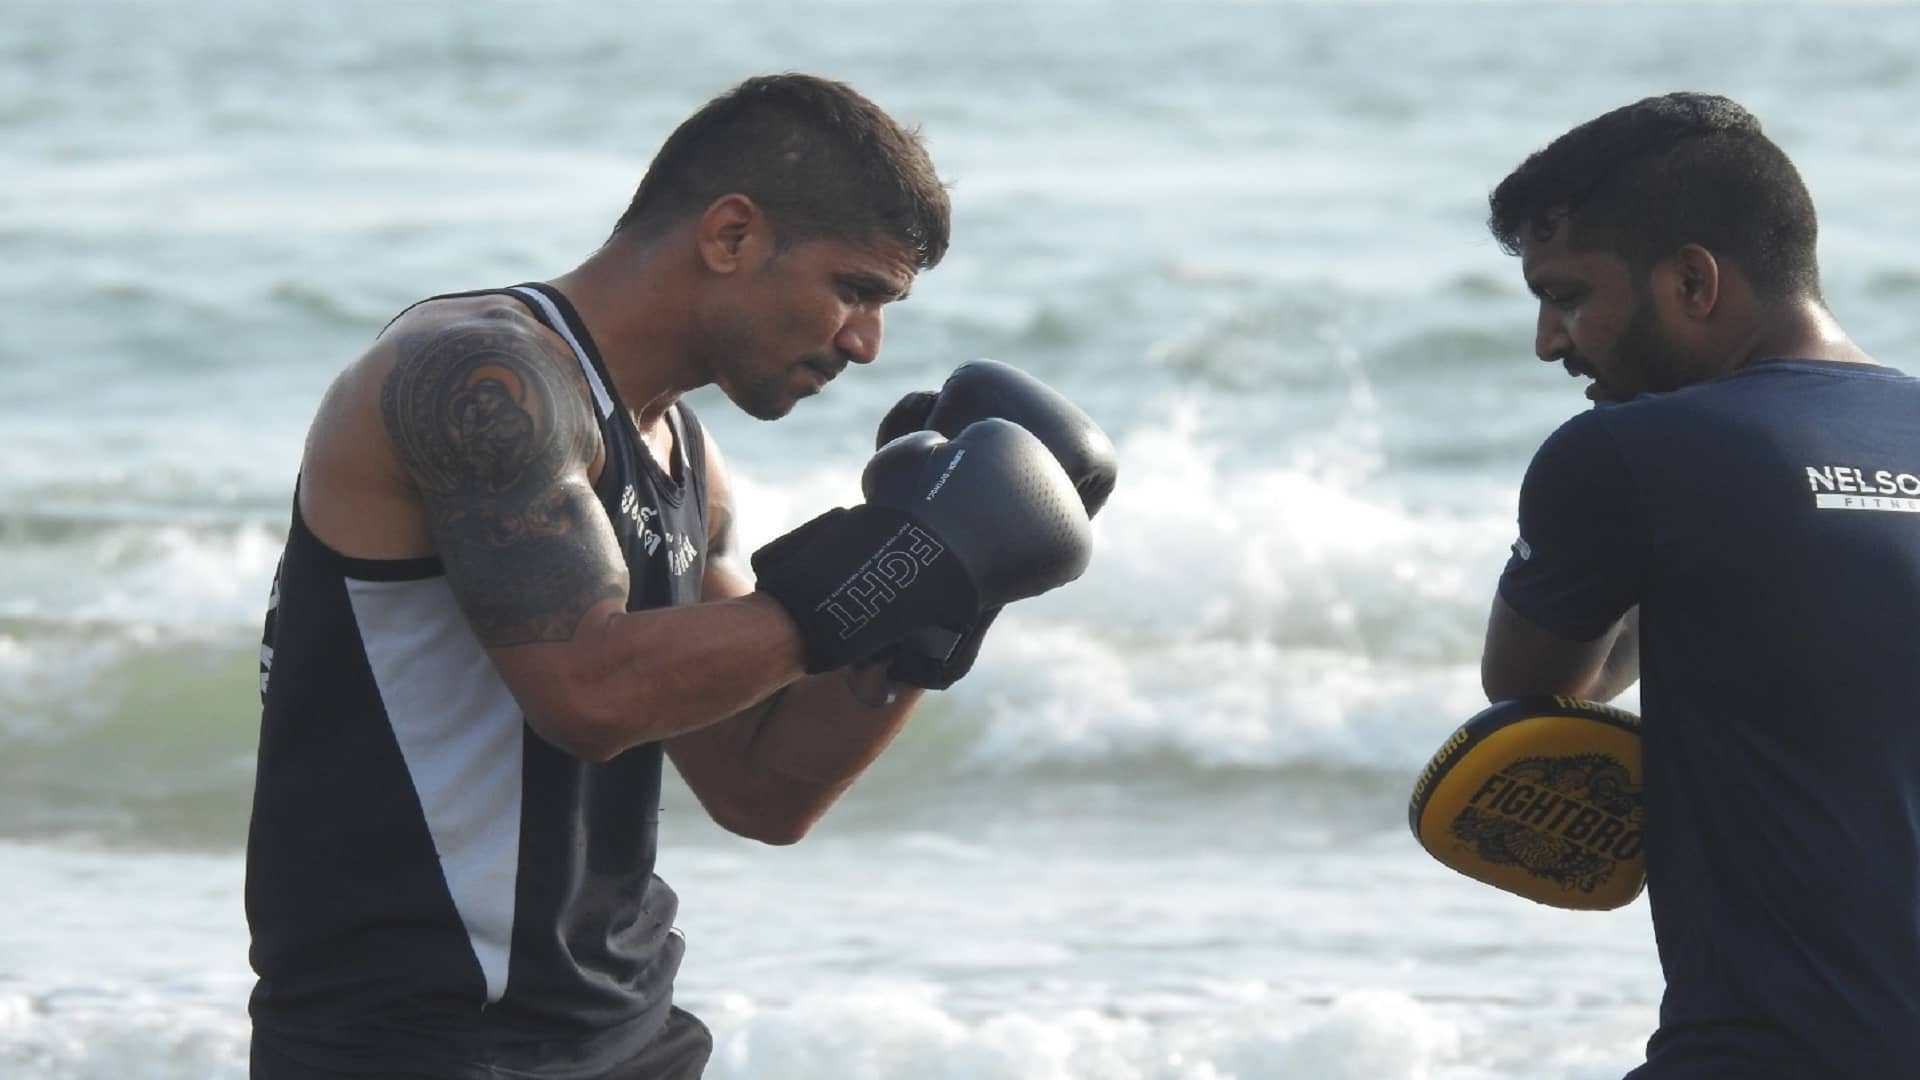 Nelson-Paes-Indian-MMA-Fighter-Goa